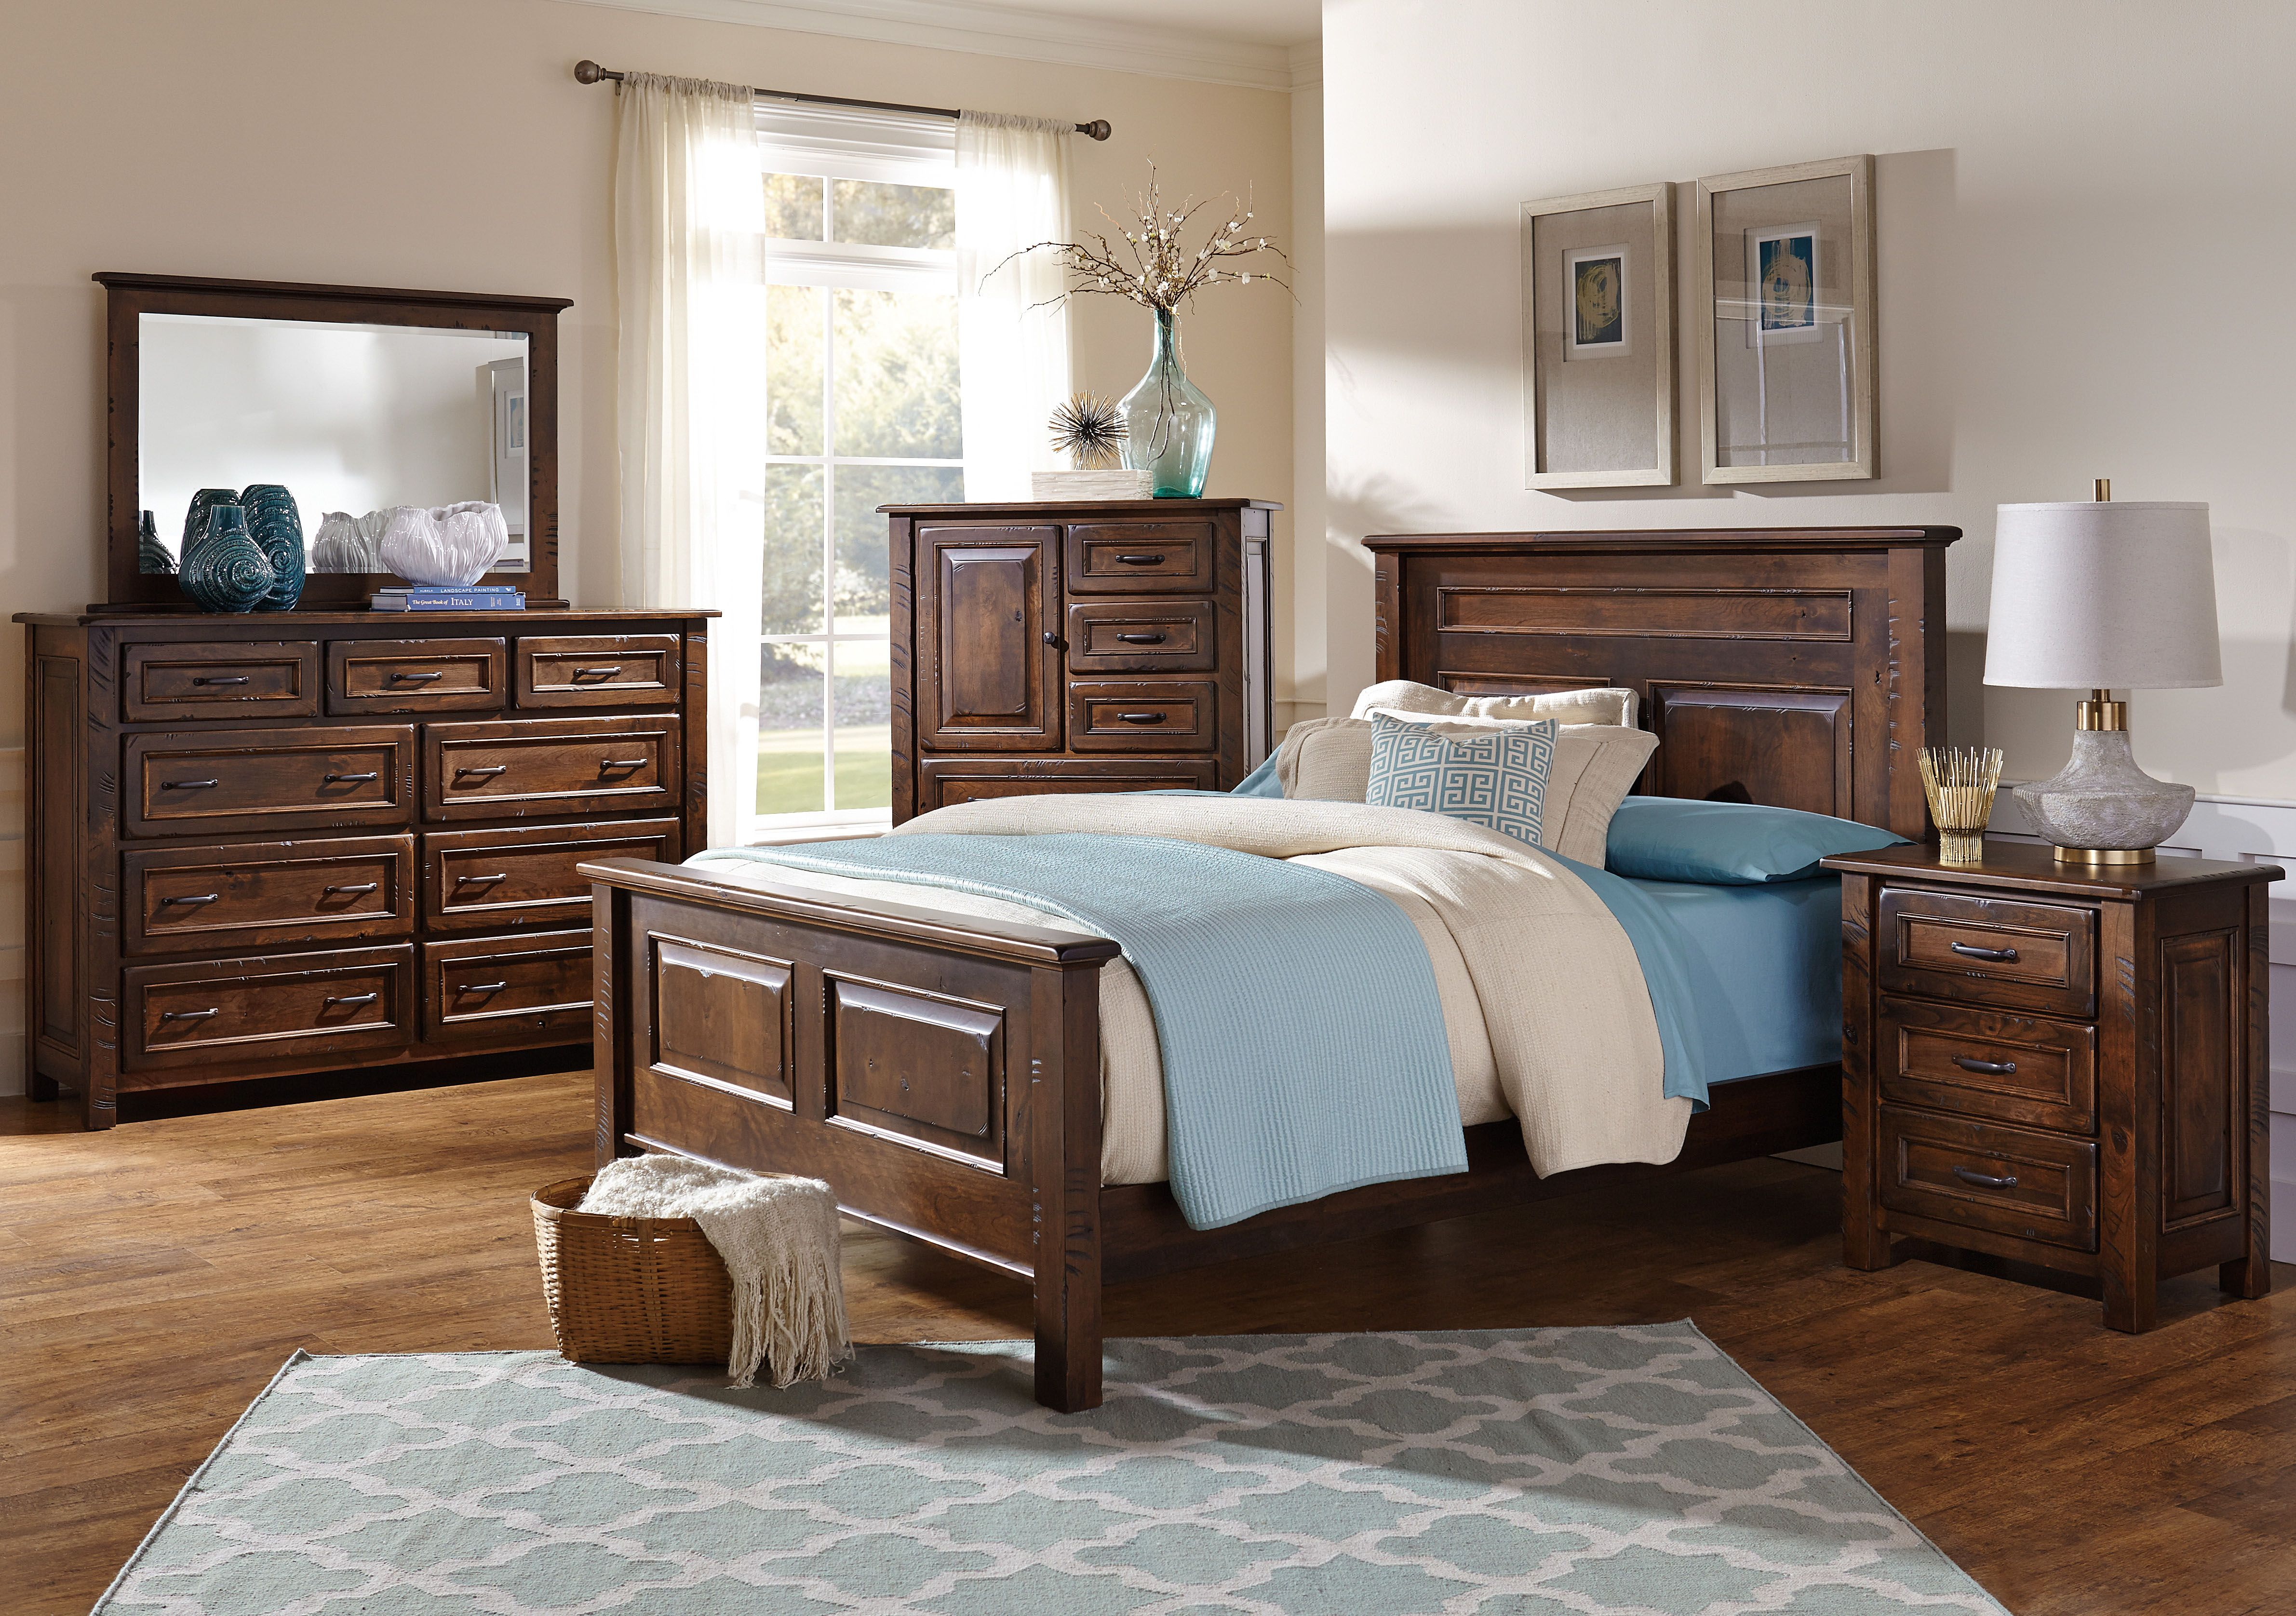 bedroom amish italian image ideas furniture built adwhole amazing staggering patio inspirations